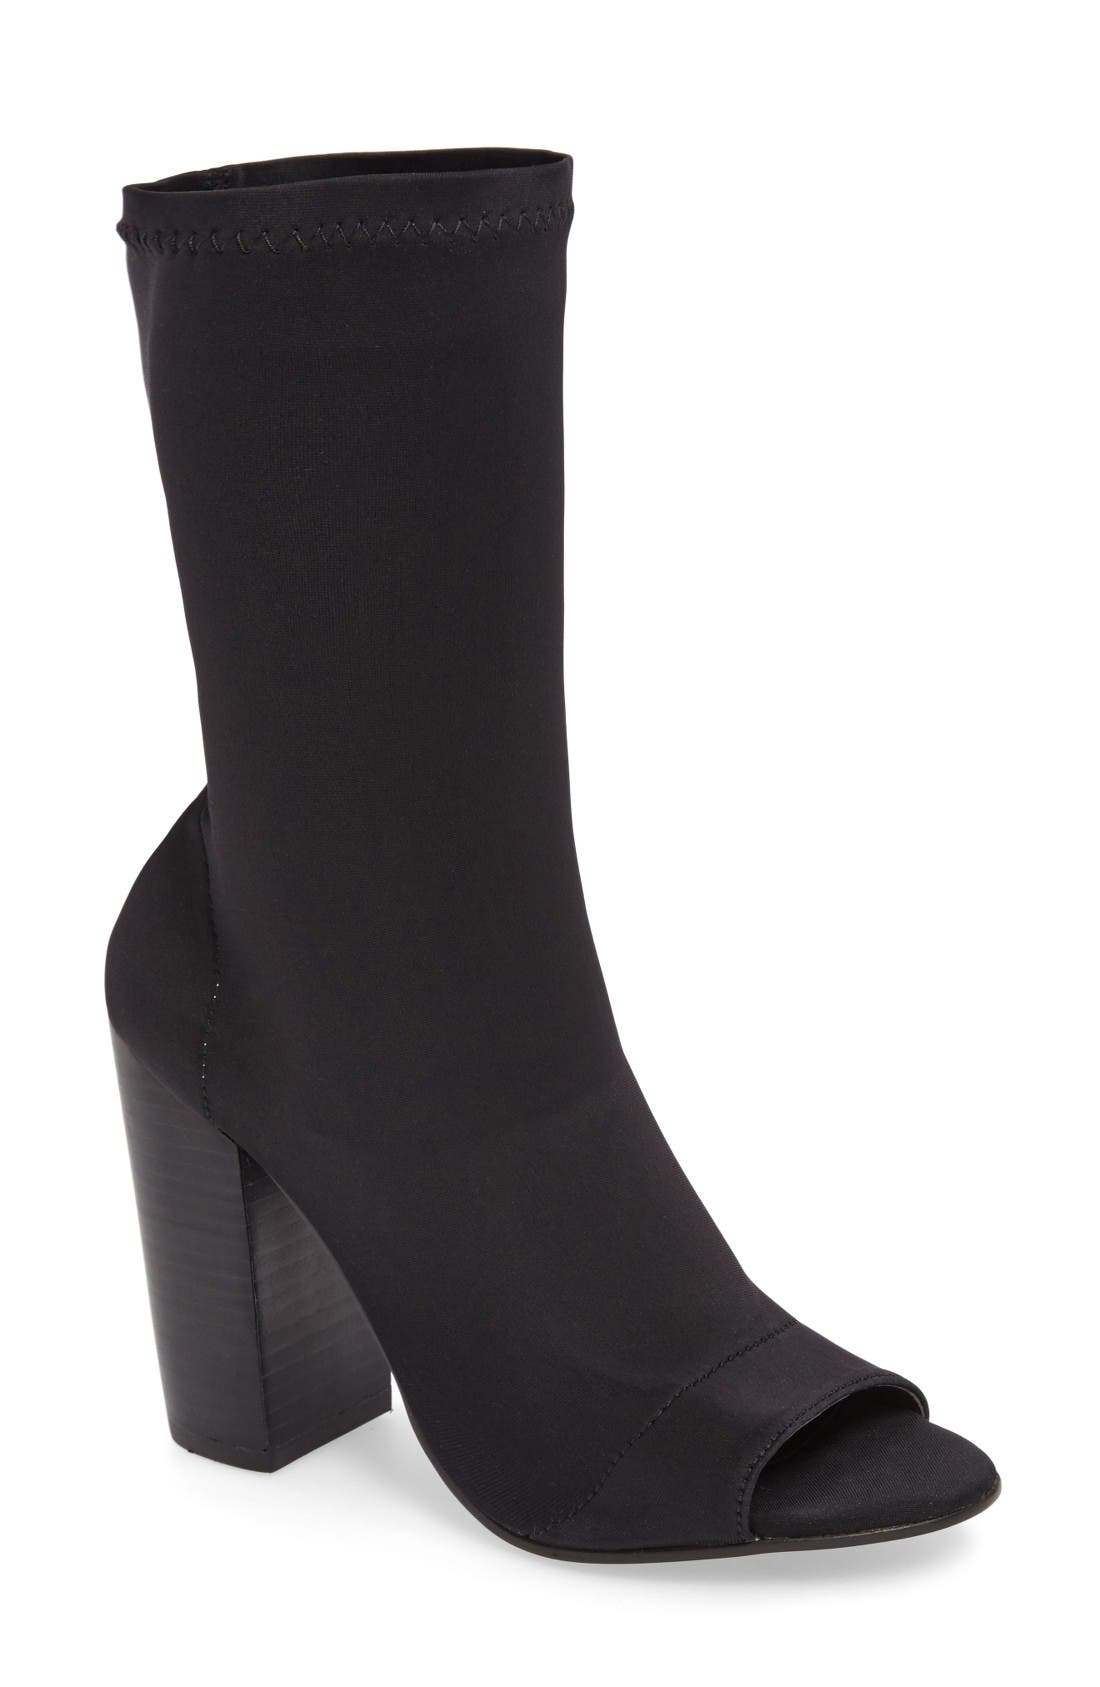 Alternate Image 1 Selected - Tony Bianco Malo Open Toe Stretch Bootie (Women)